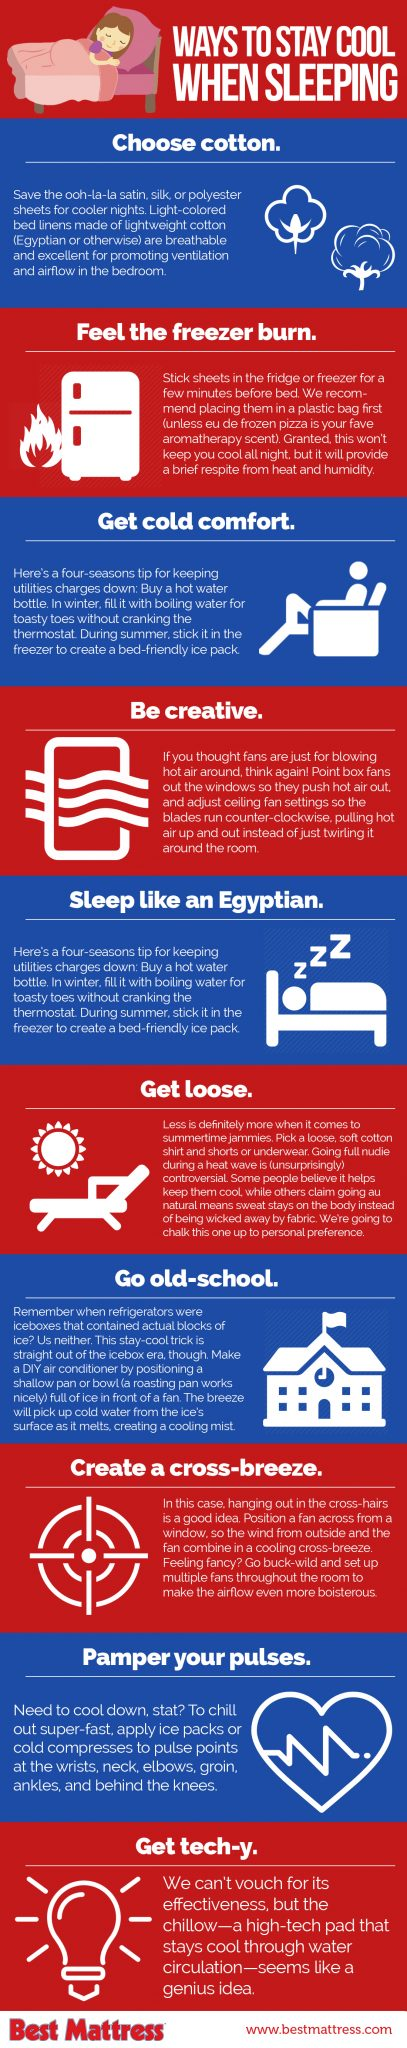 Staying Cool Sleeping at night Infographic from Best Mattress in Las Vegas, Mesquite, and St. George Utah